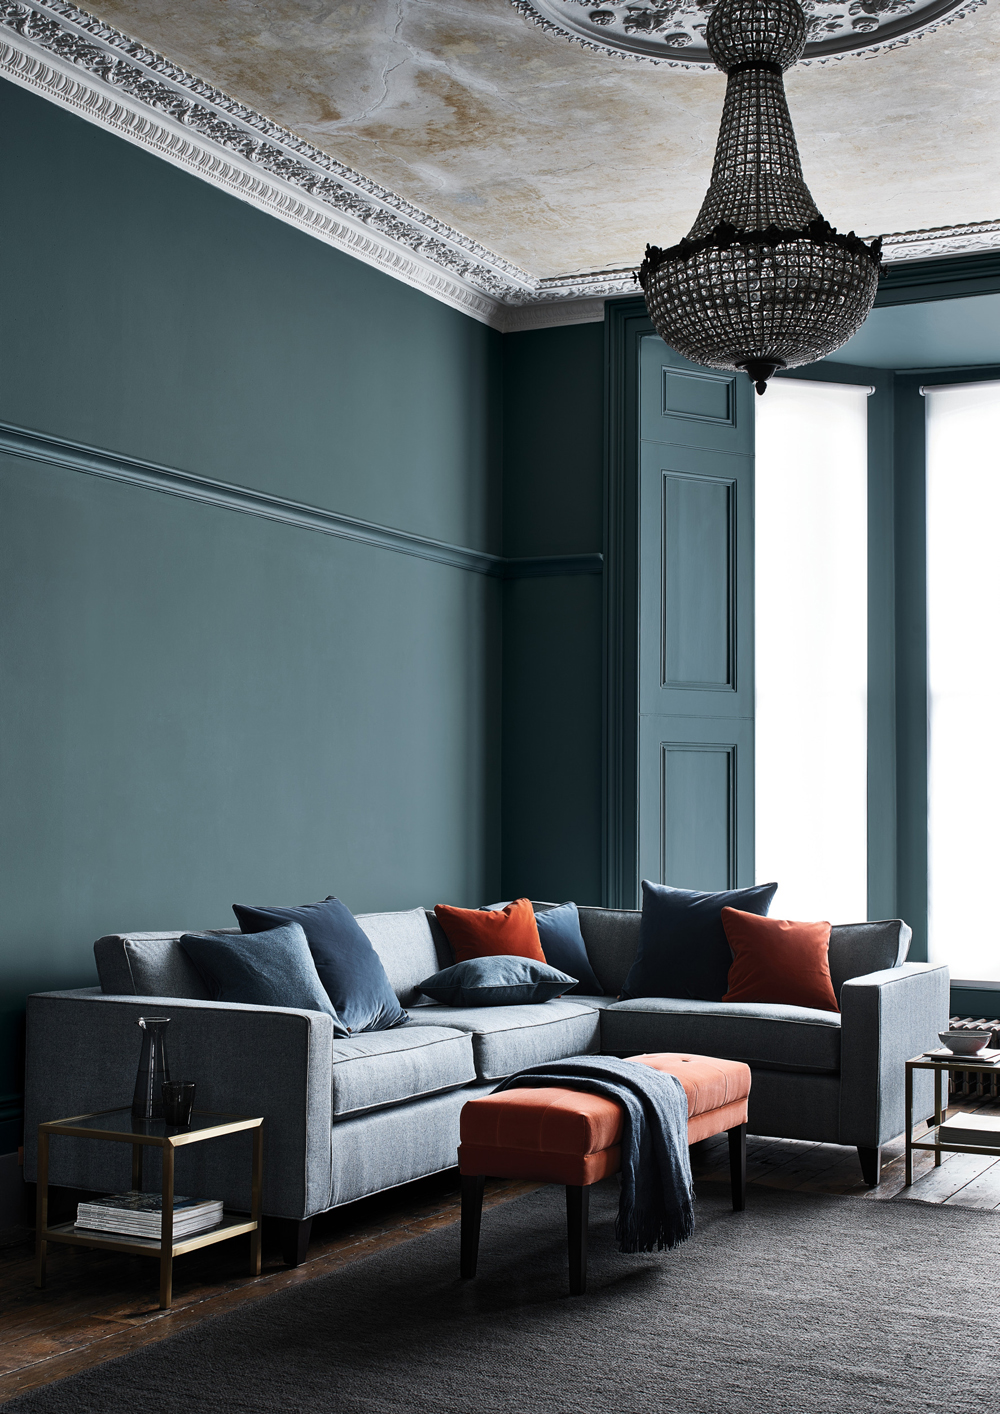 Shoreditch Design Rooms: Dark And Dramatic Interior Design Inspiration